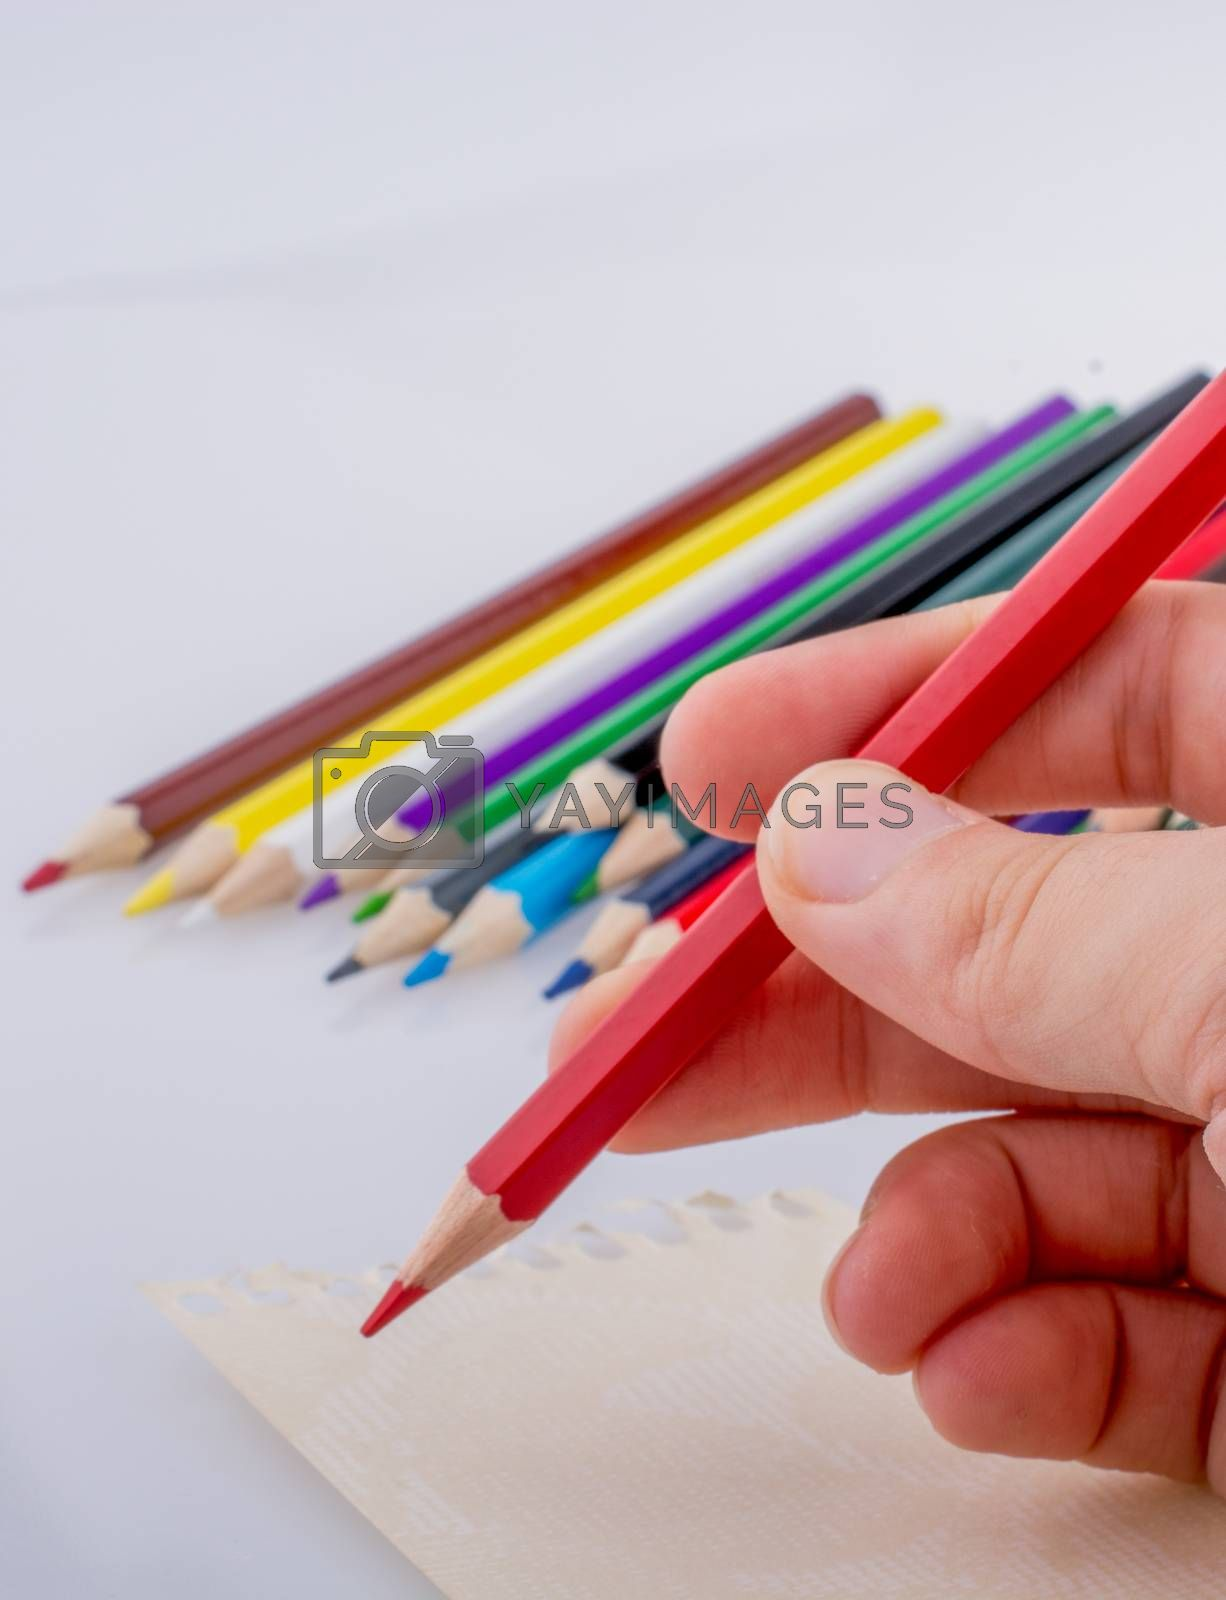 Hand holding a pencil beside the colorful pencils  on a white background